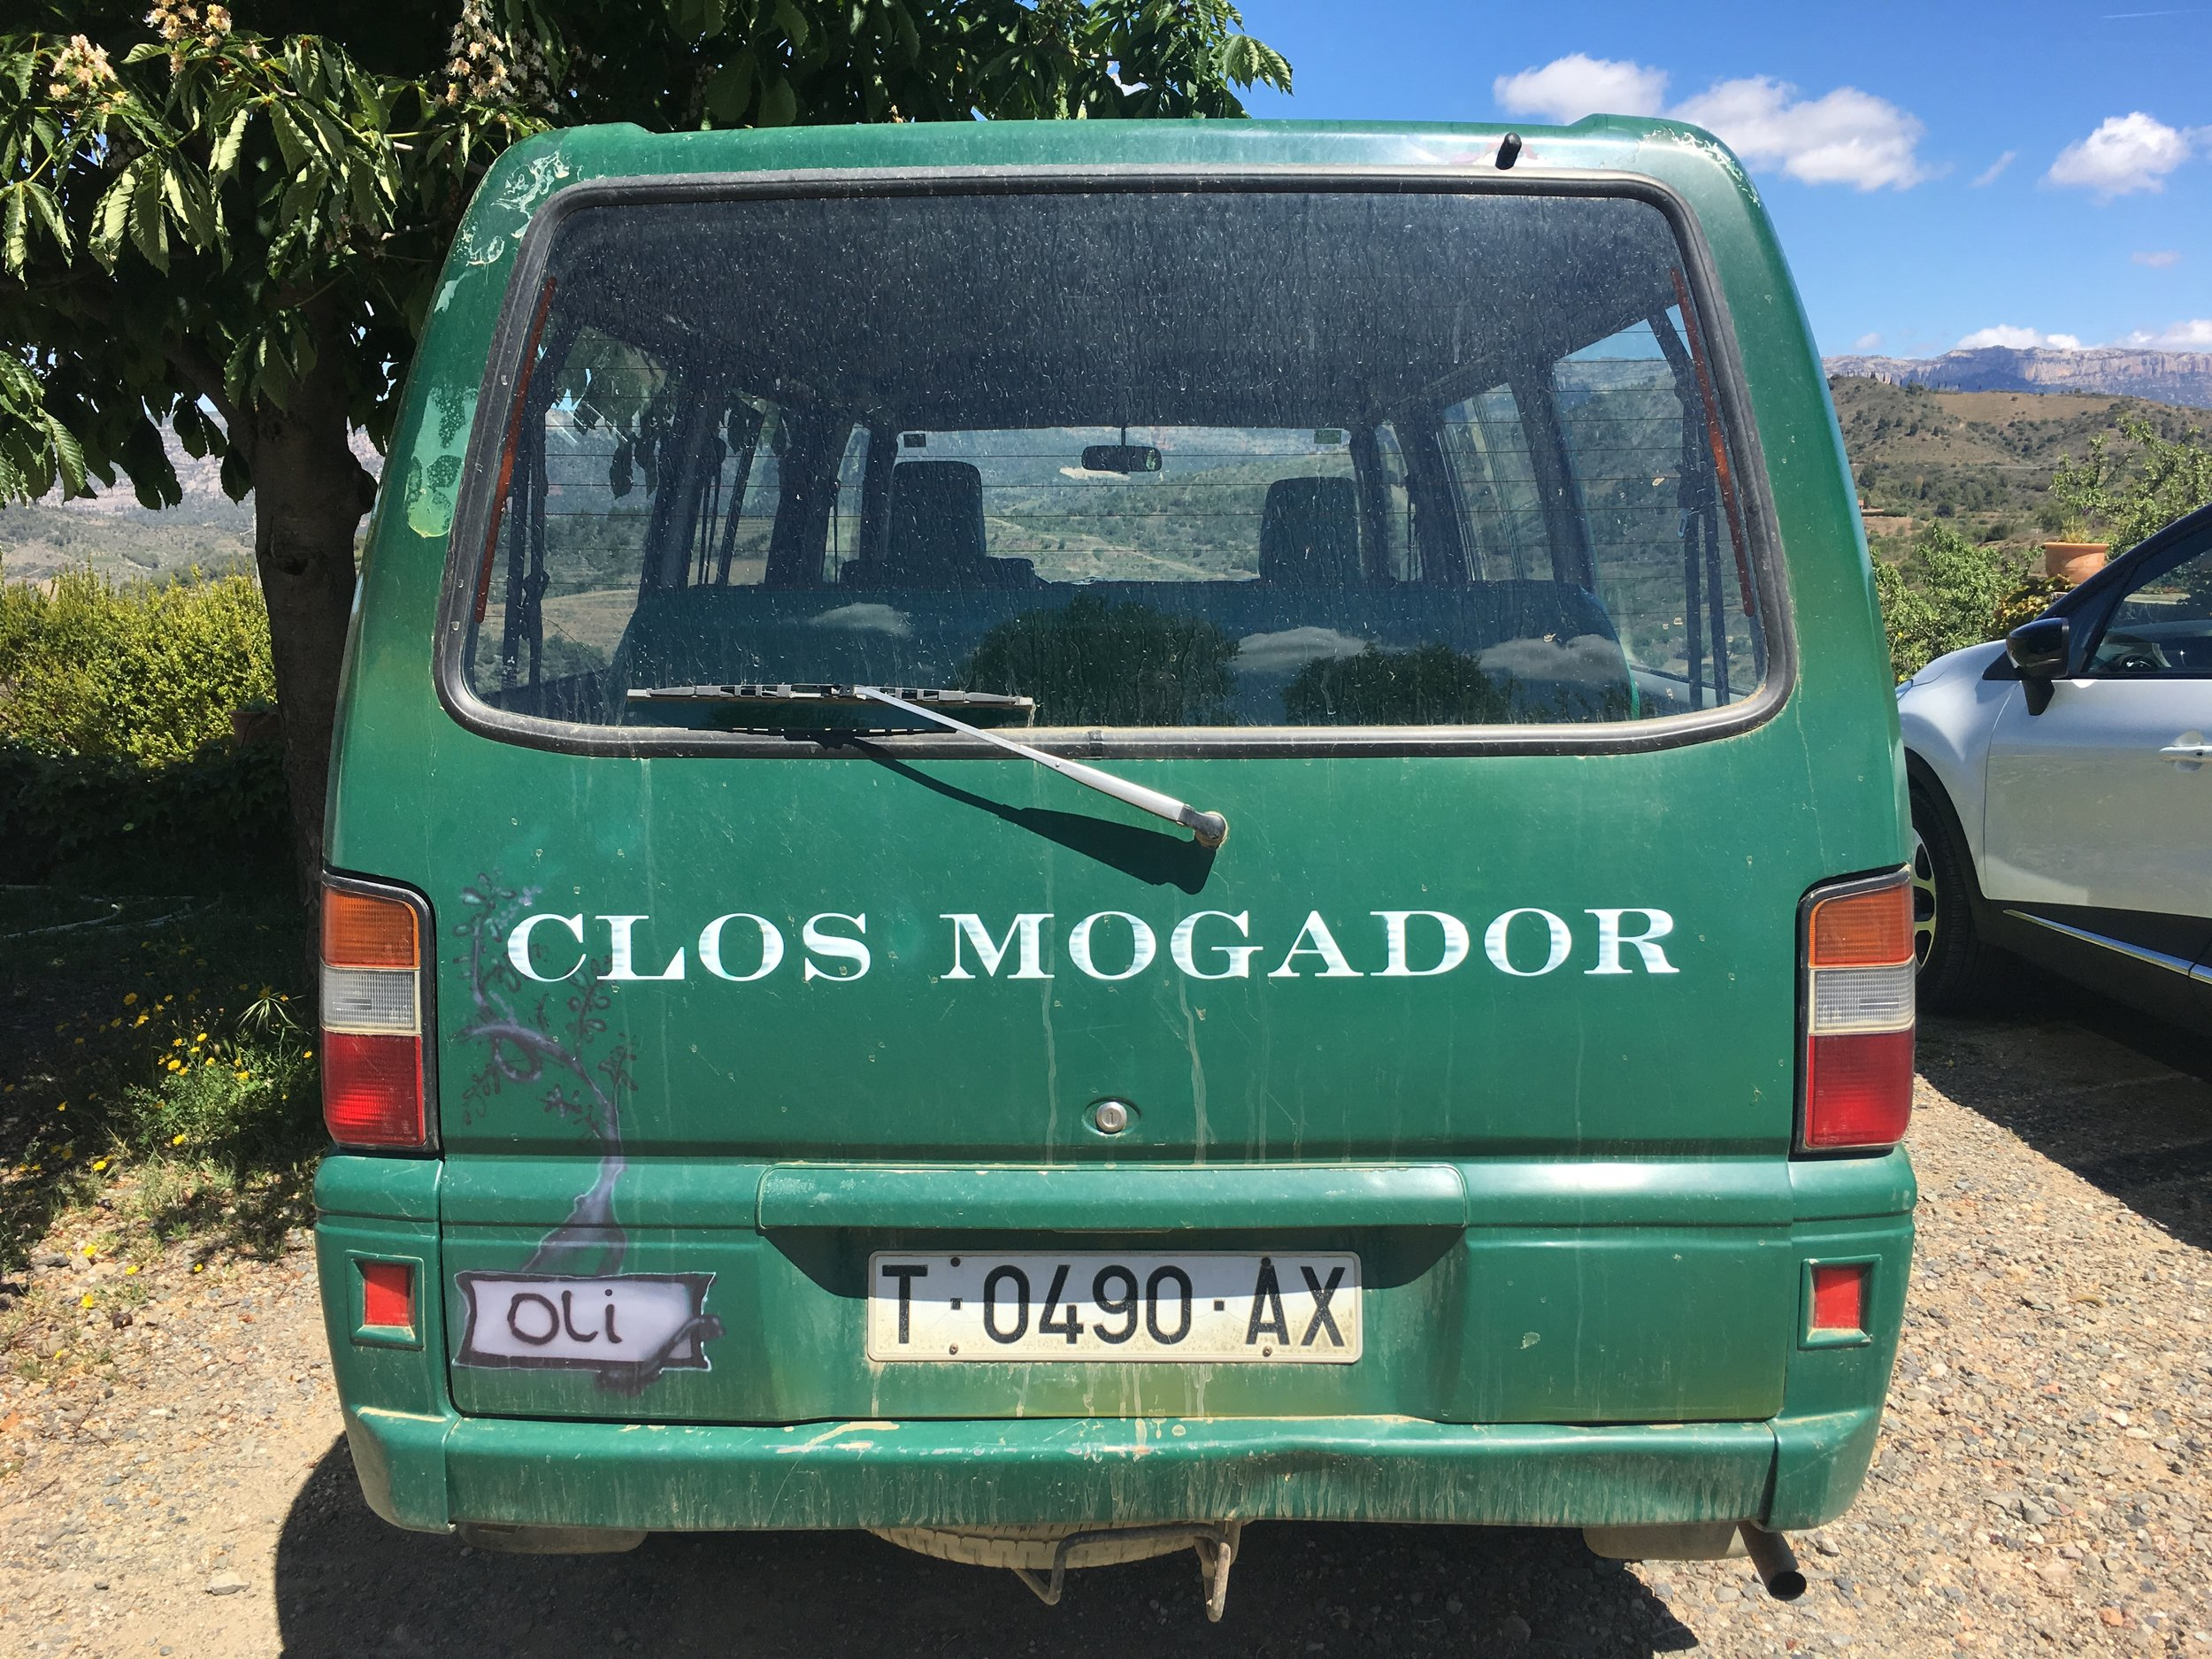 René took us around the vineyards in an old family van